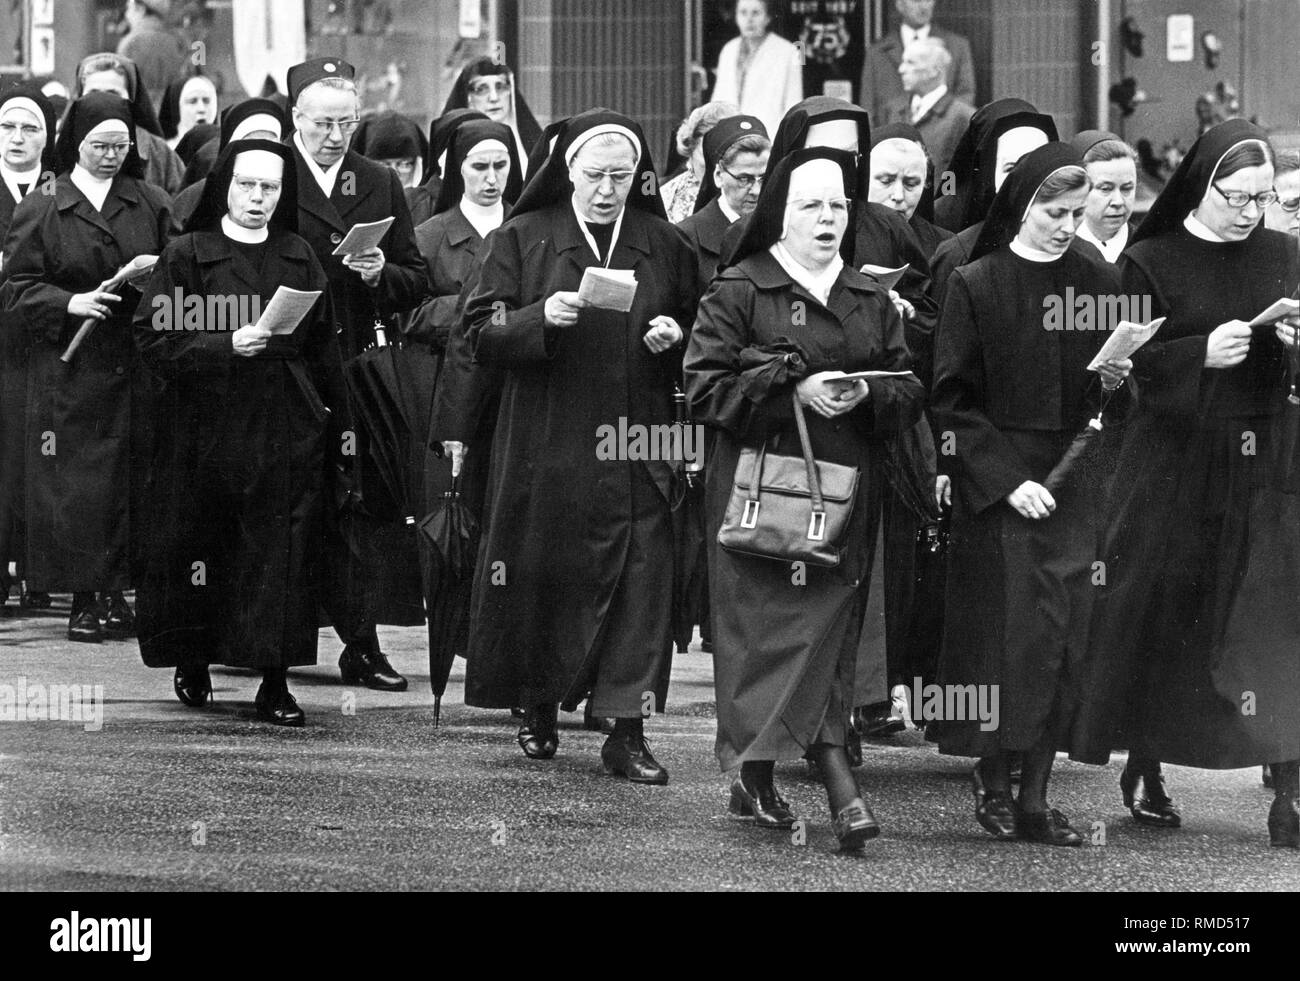 Nuns of a Catholic religious order sing in the street Stock Photo - Alamy